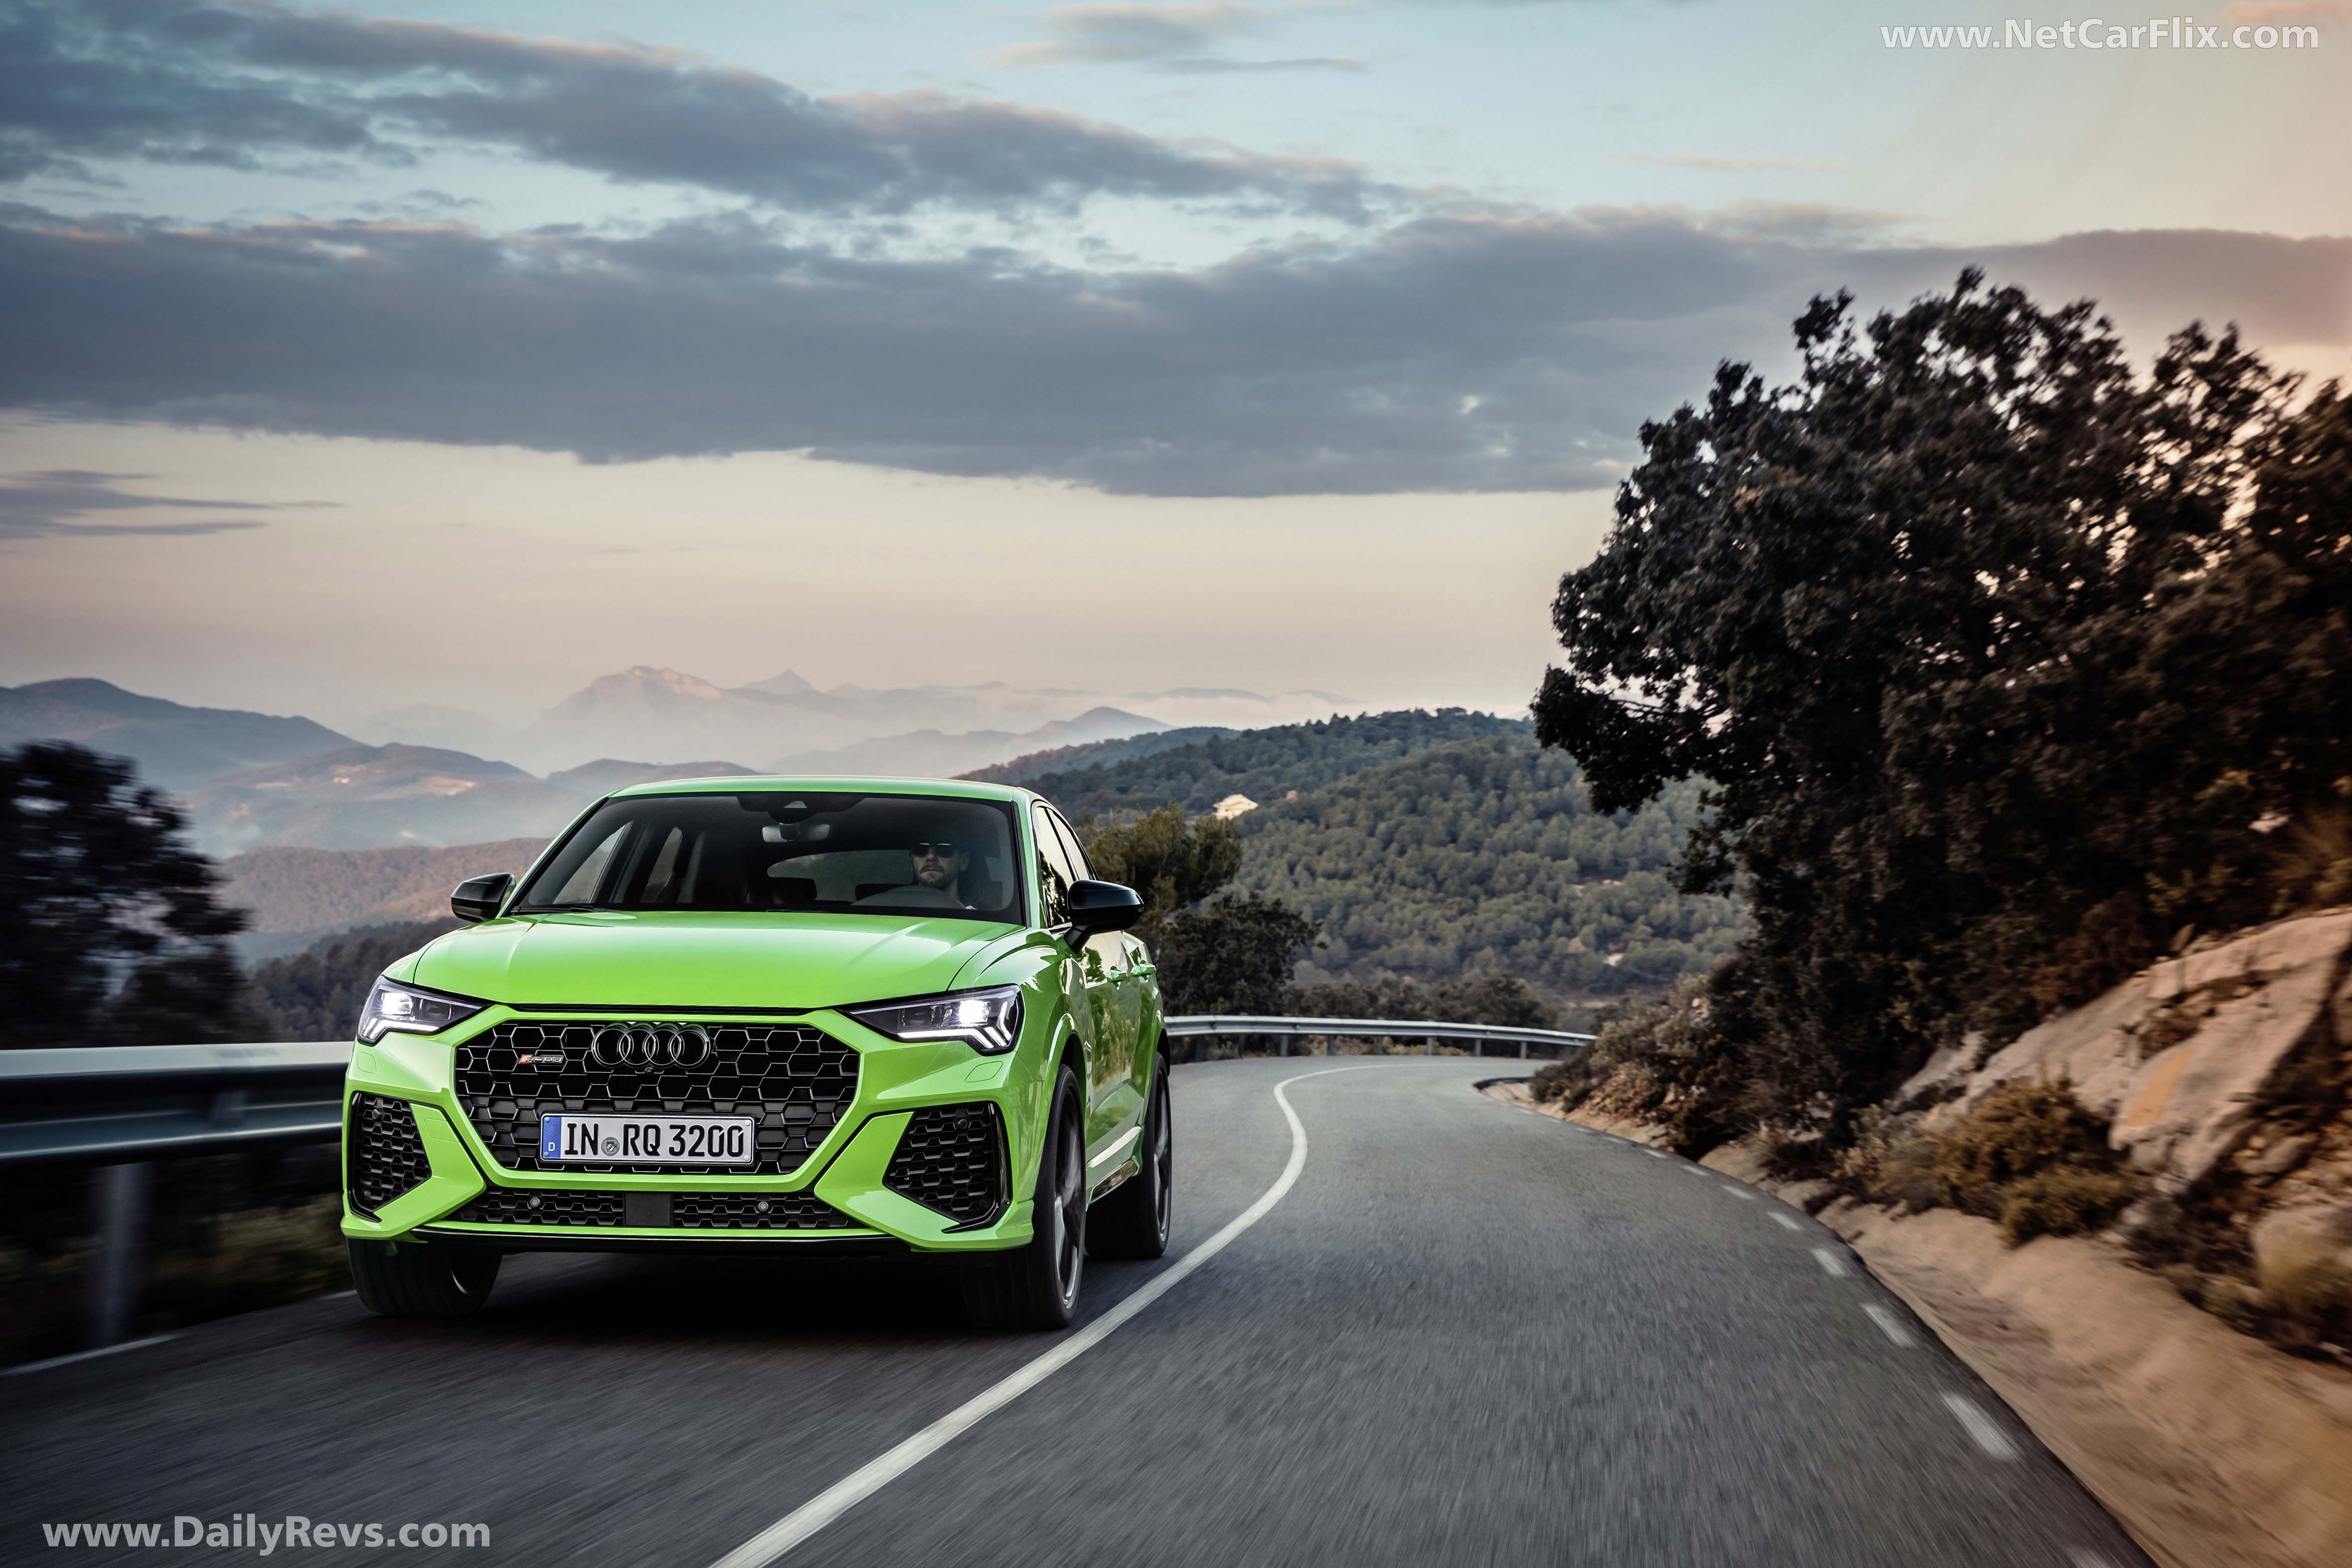 2020 Audi Rs Q3 Sportback Pictures Images Wallpapers Dailyrevs In 2020 Audi Rs Audi Cylinder Liner